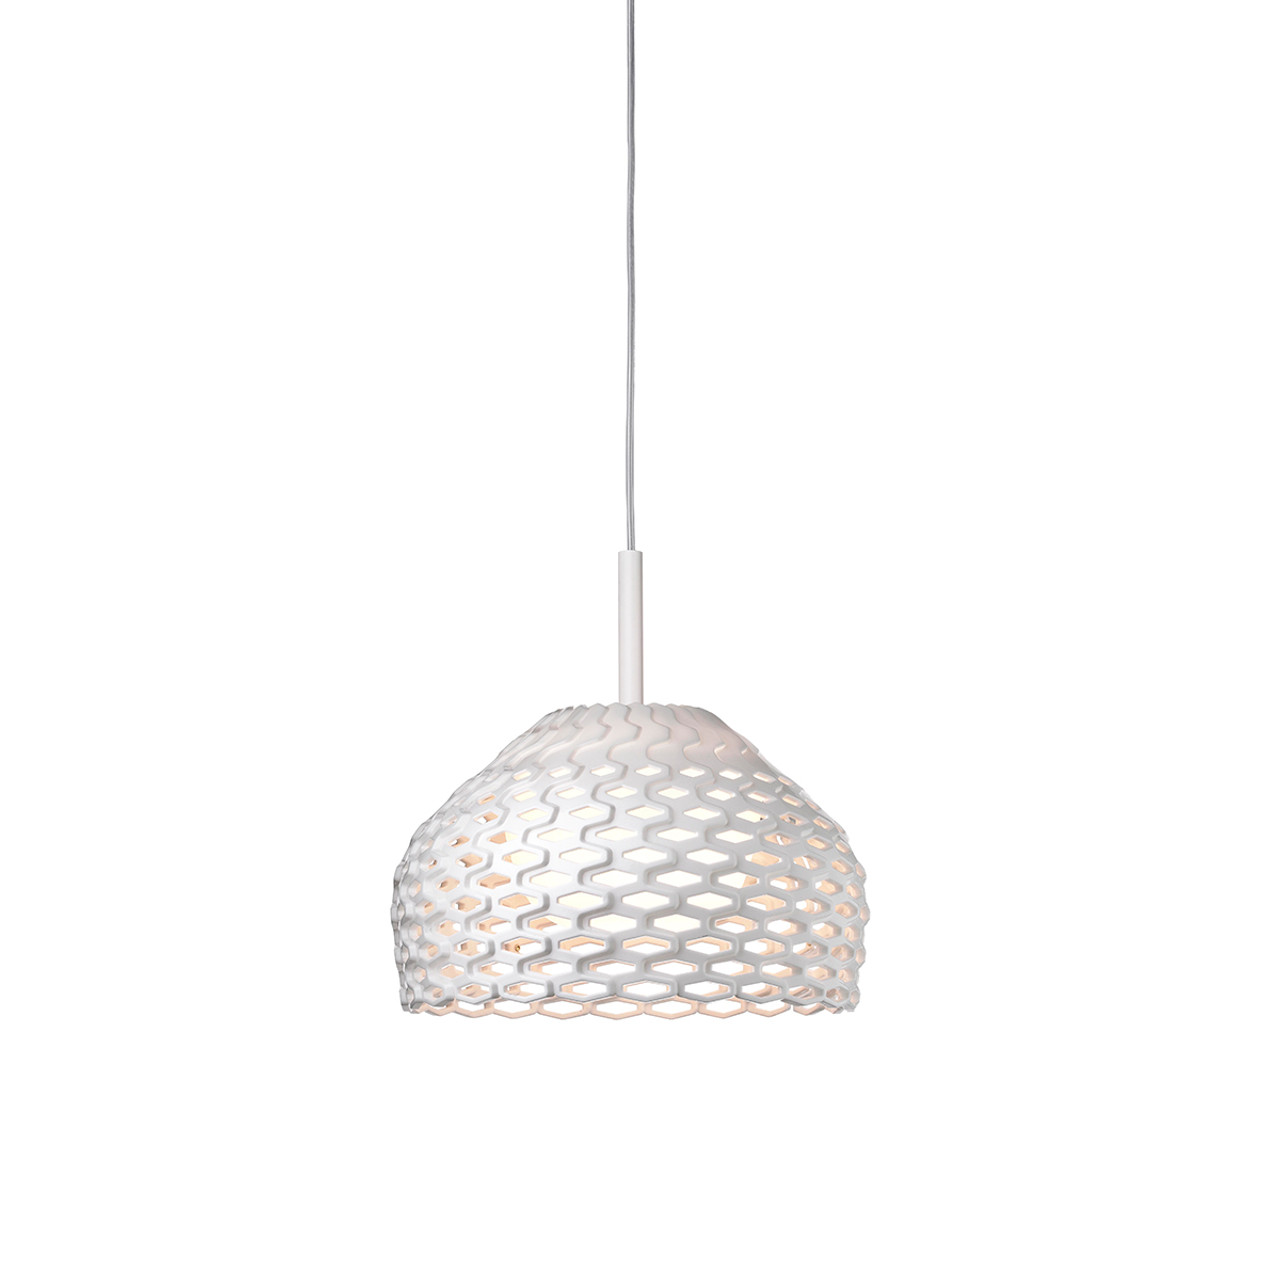 Flos Tatou S Modern Pendant Light By Patricia Urquiola Flos Usa